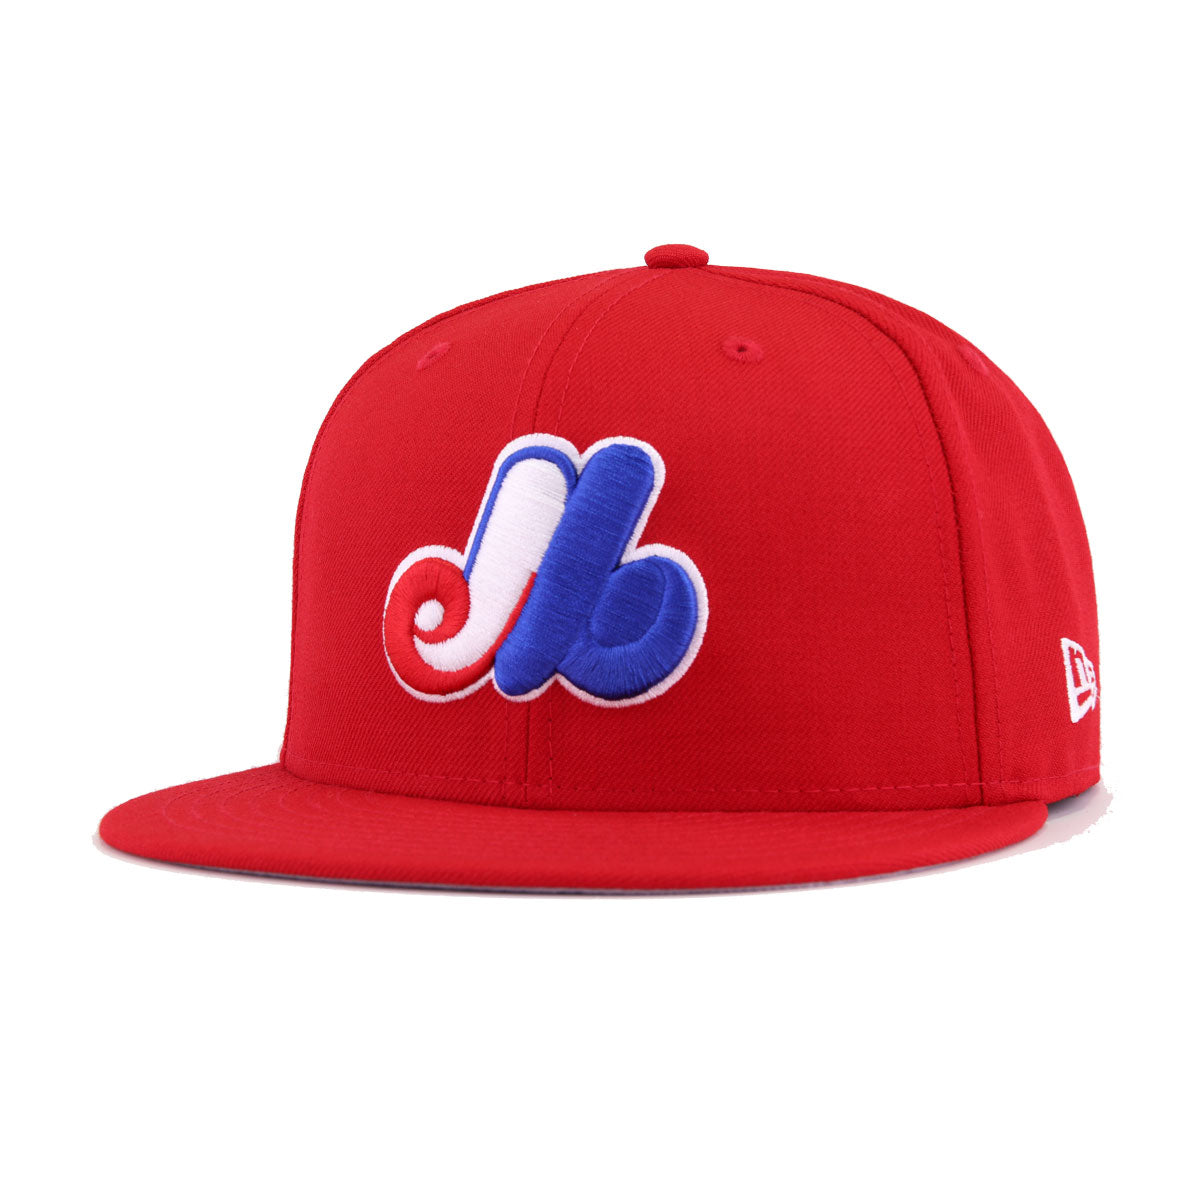 9c604f6d5 promo code for white black black montreal expos mlb new era and ...